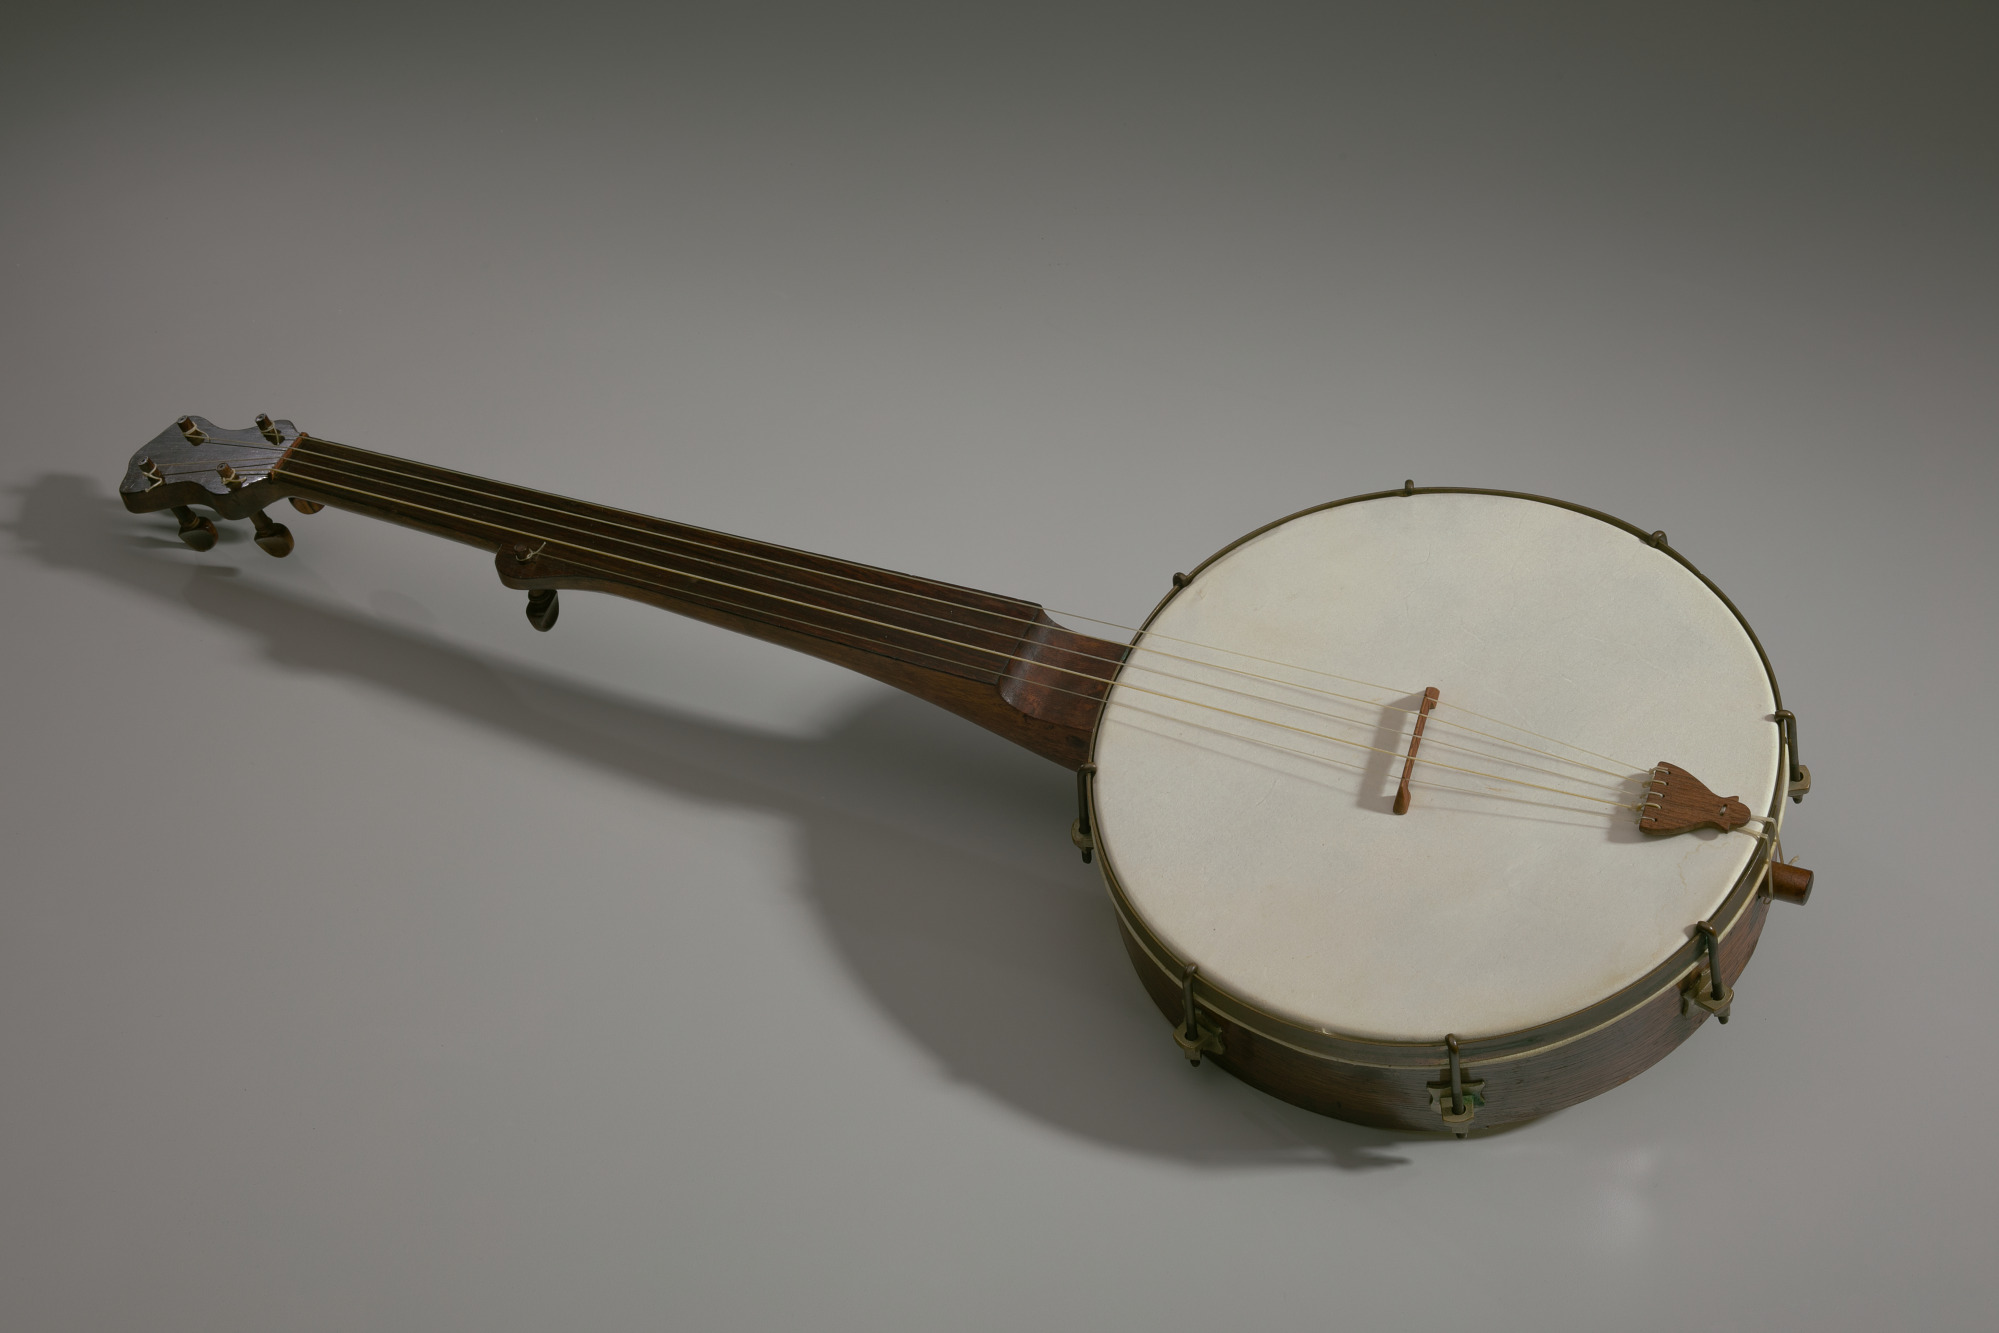 Image 1 for Banjo made in the style of William Esperance Boucher, Jr.